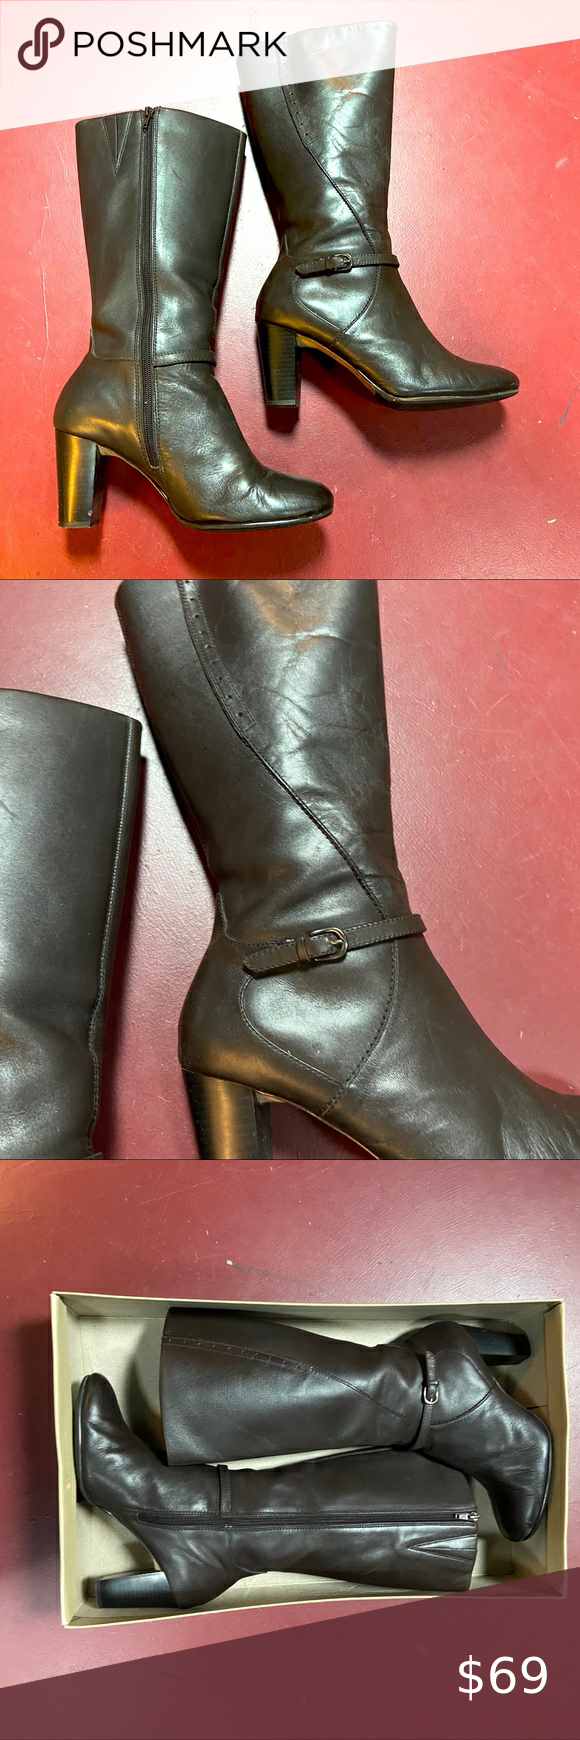 "Photo of Naturalizer leather boots. ""Downtown"" style size 8"